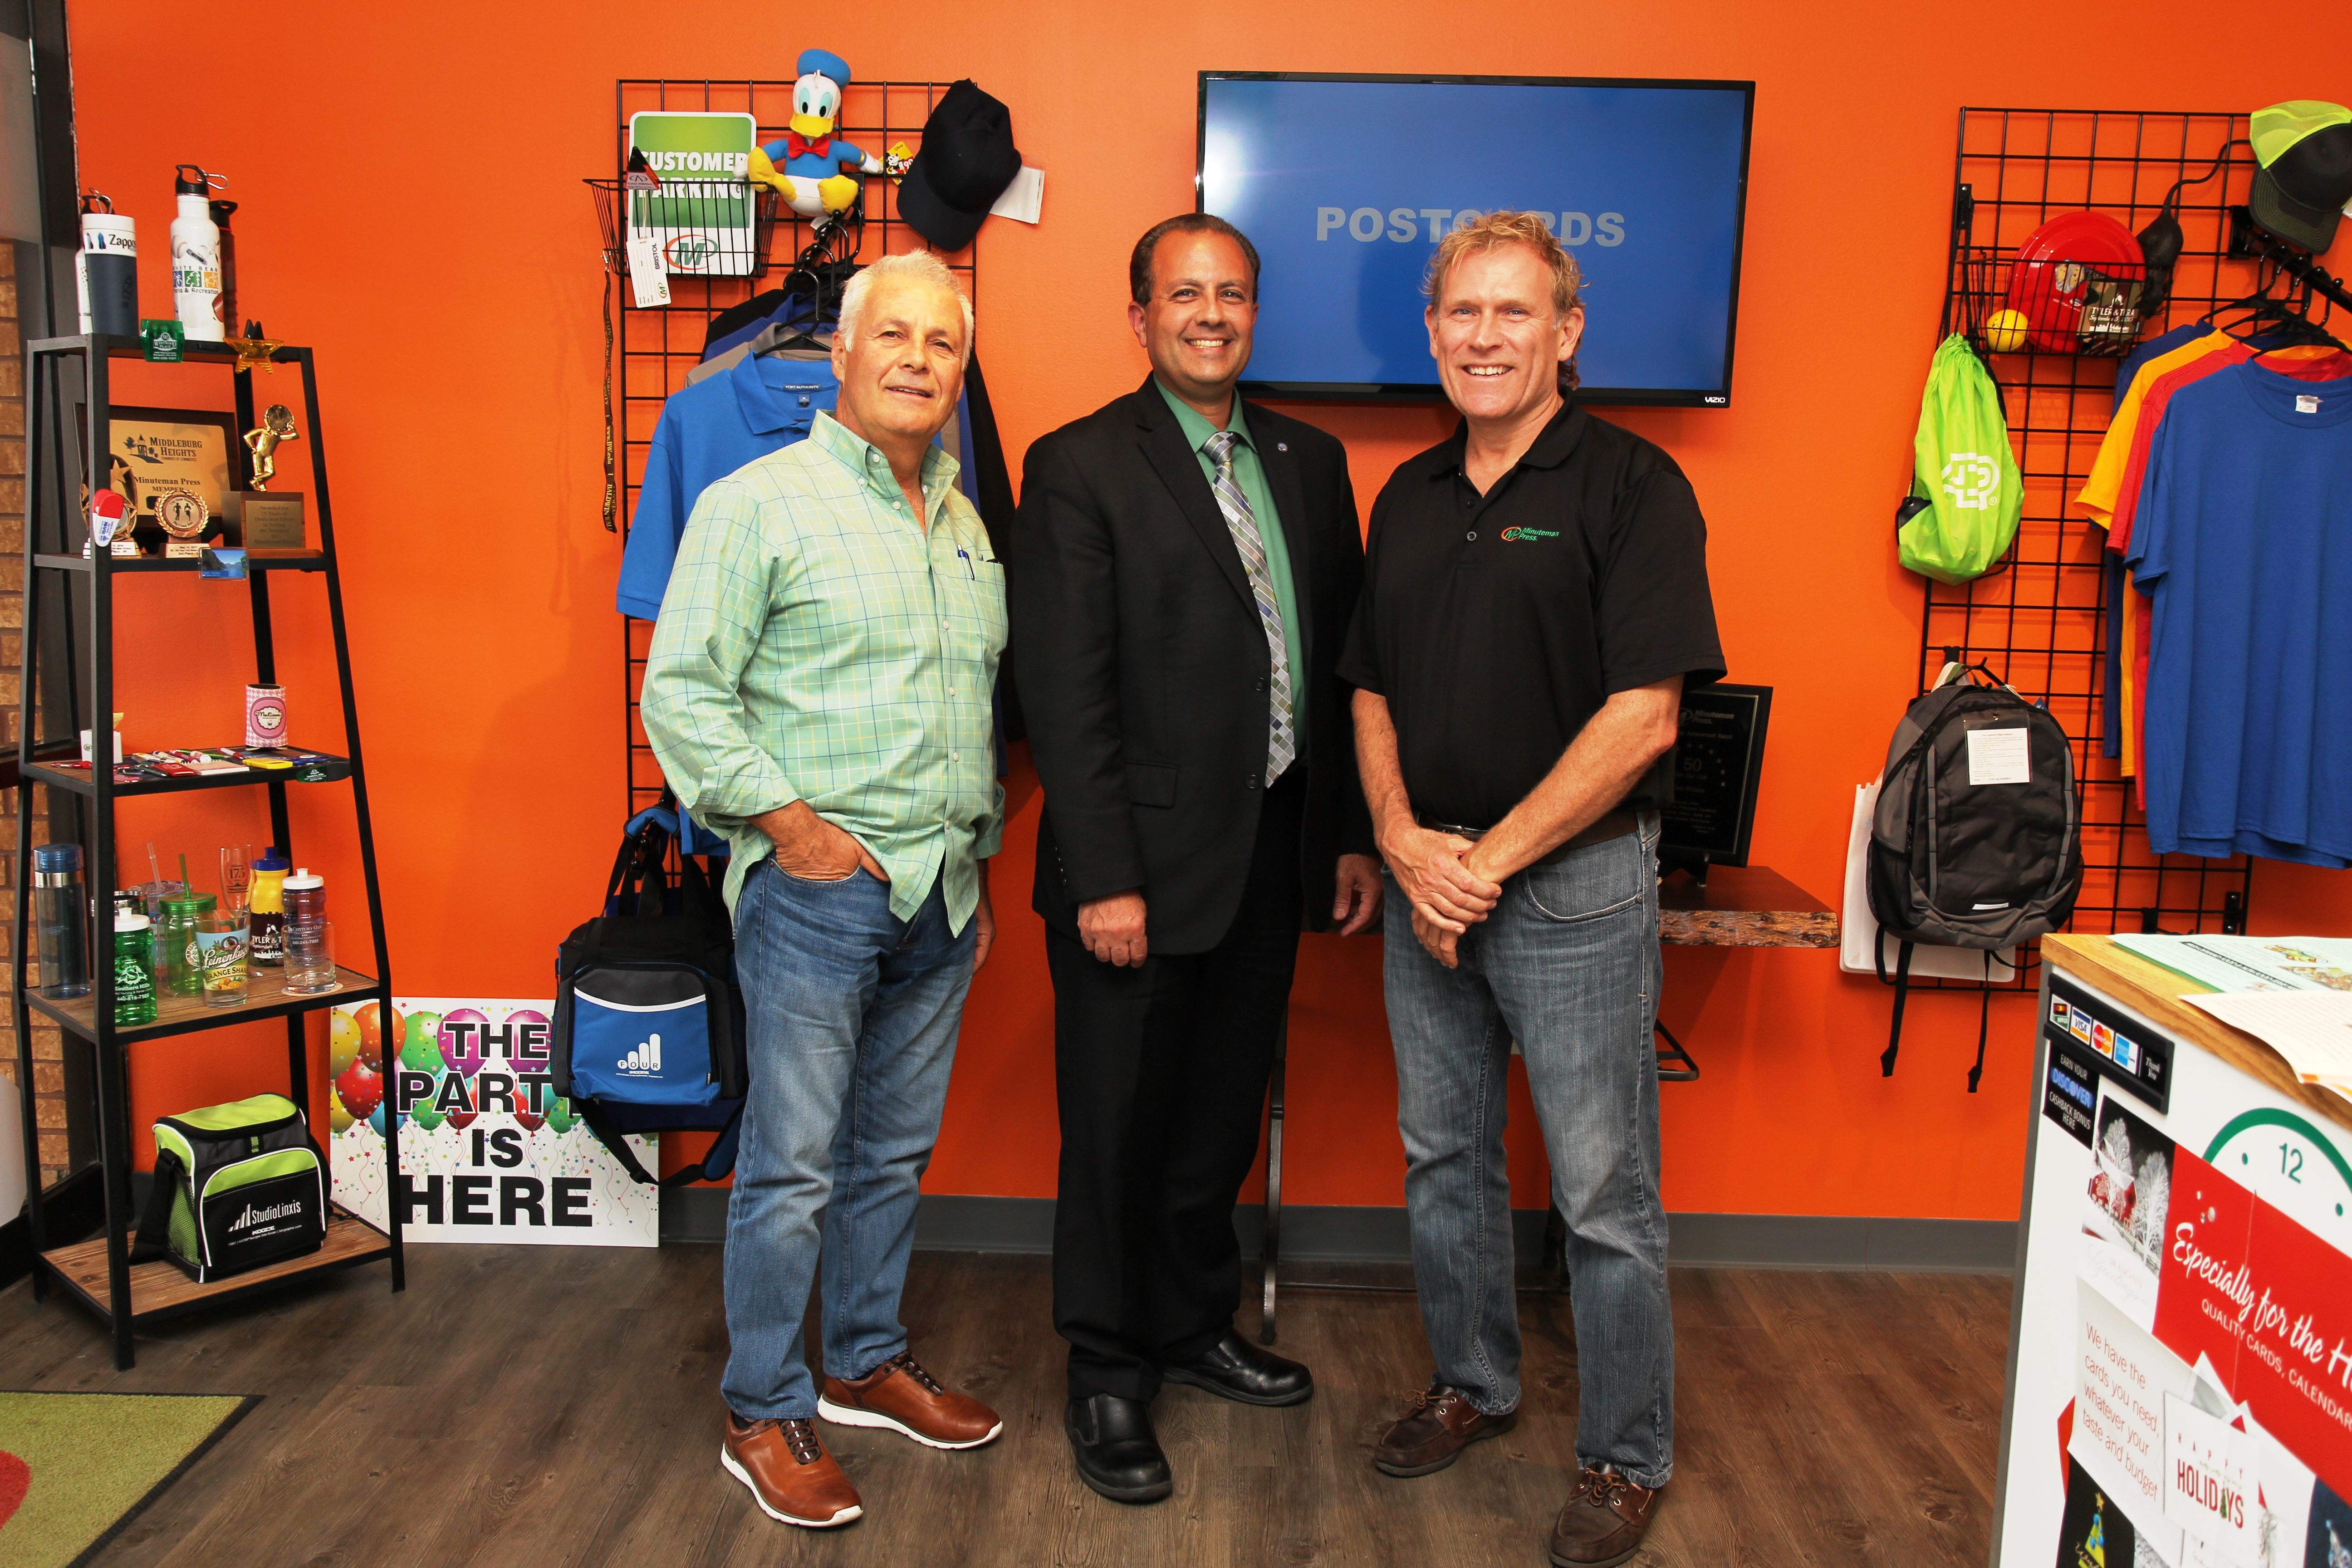 Chris Williams (right) inside his brand new Minuteman Press franchise location in Middleburg Heights, Ohio. http://www.minutemanpressfranchise.com